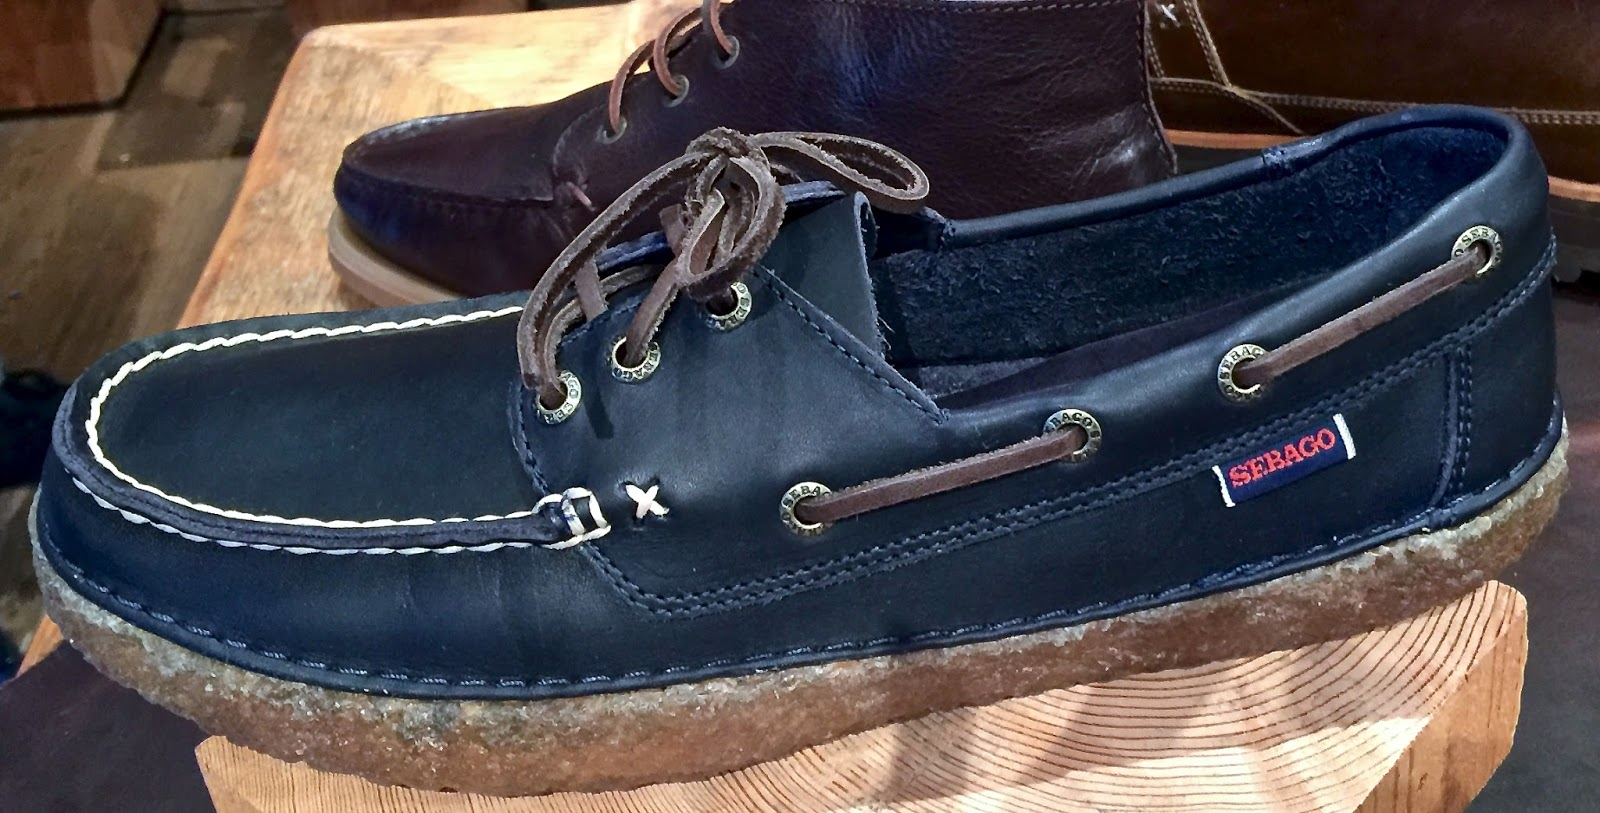 Iconic boat-deck style...with moccasin construction- anti-rust eyelets,  rawhide leather laces, on a highly slip-resistant crepe rubber outsole that  is ...